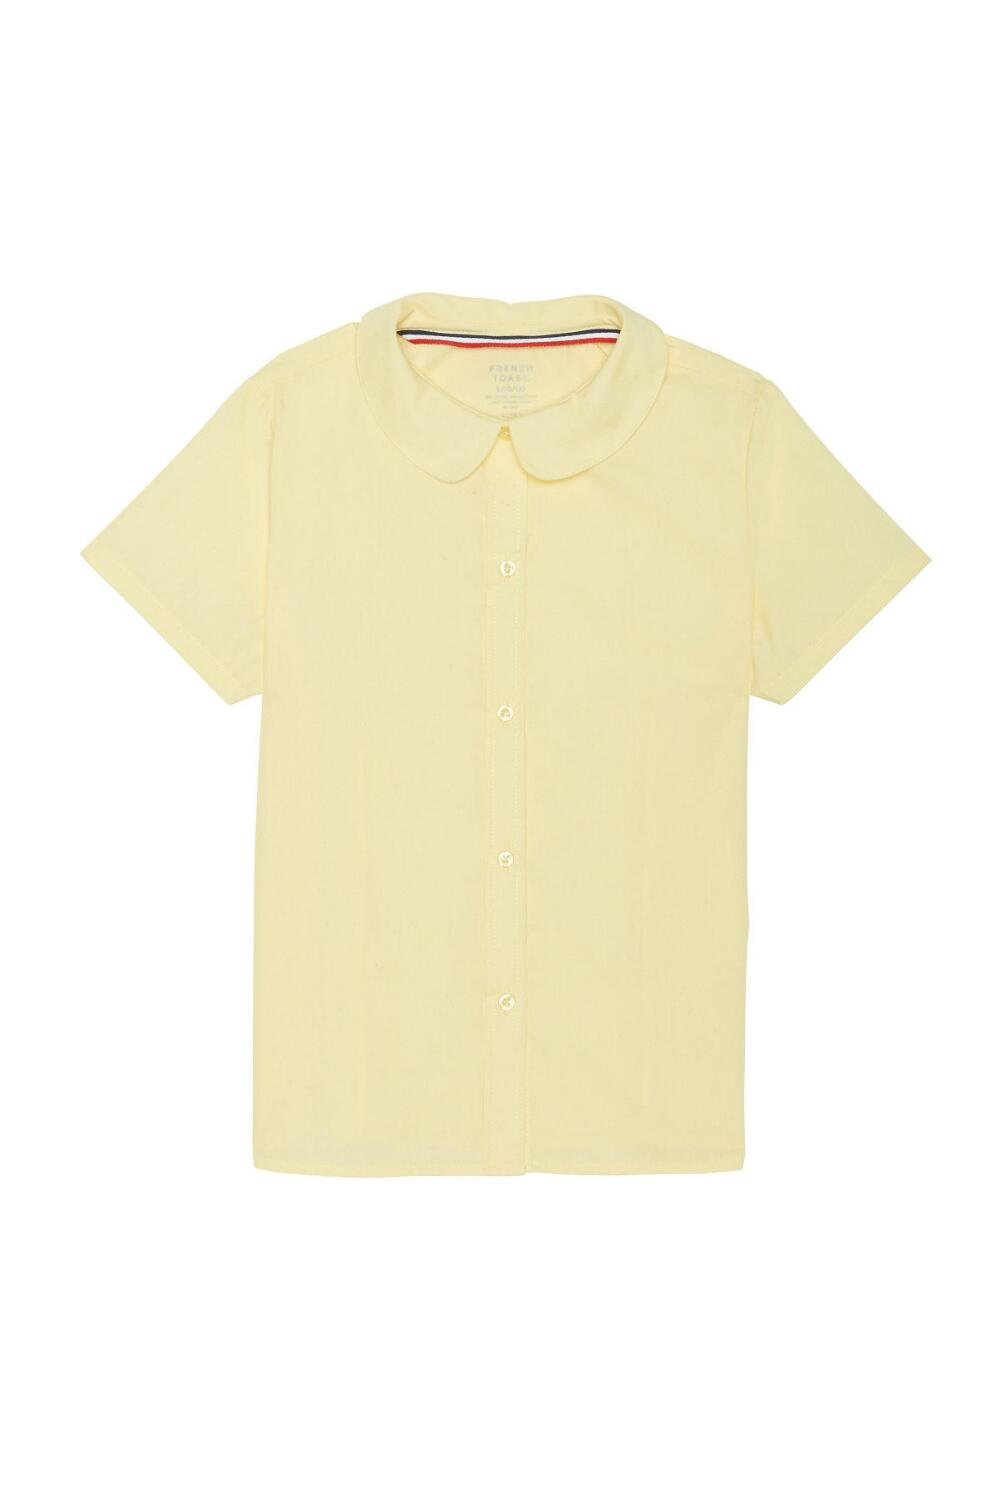 French Toast Little Girls' Short Sleeve Peter Pan Collar Blouse, Yellow, 5